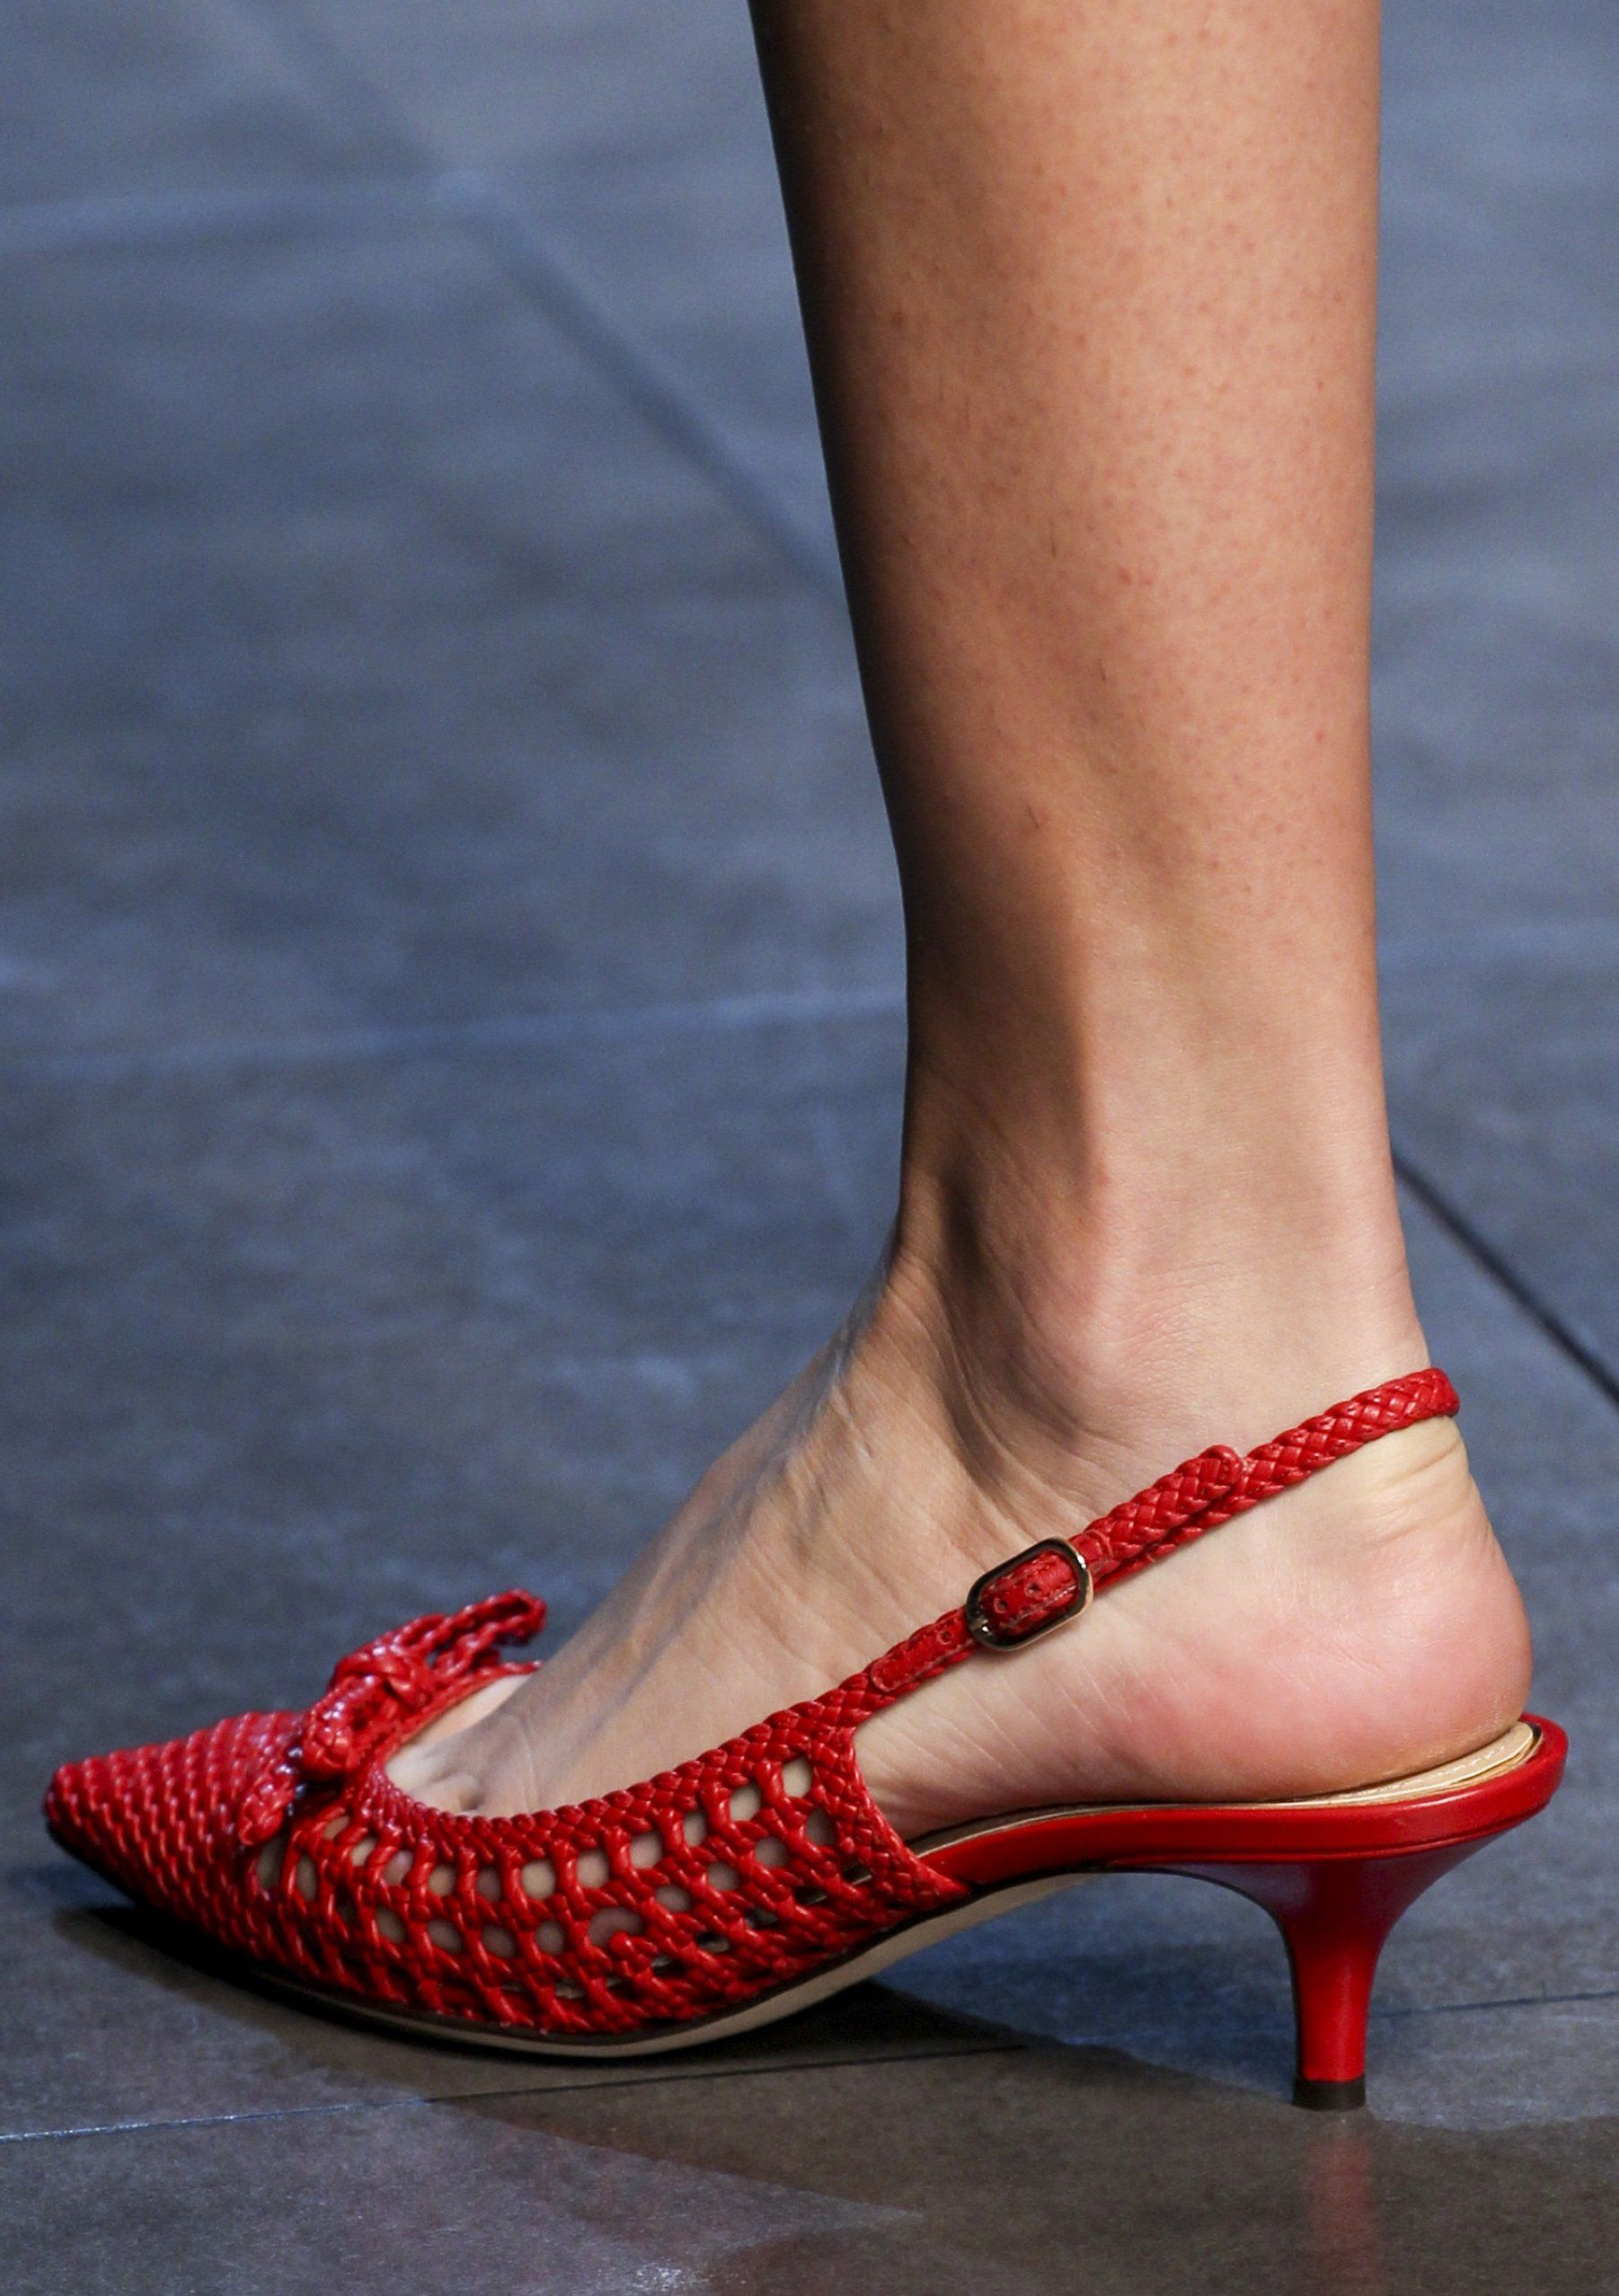 Dolce Gabbana Spring 2014 Kitten Heel Shoes Chic Shoes Dolce And Gabbana